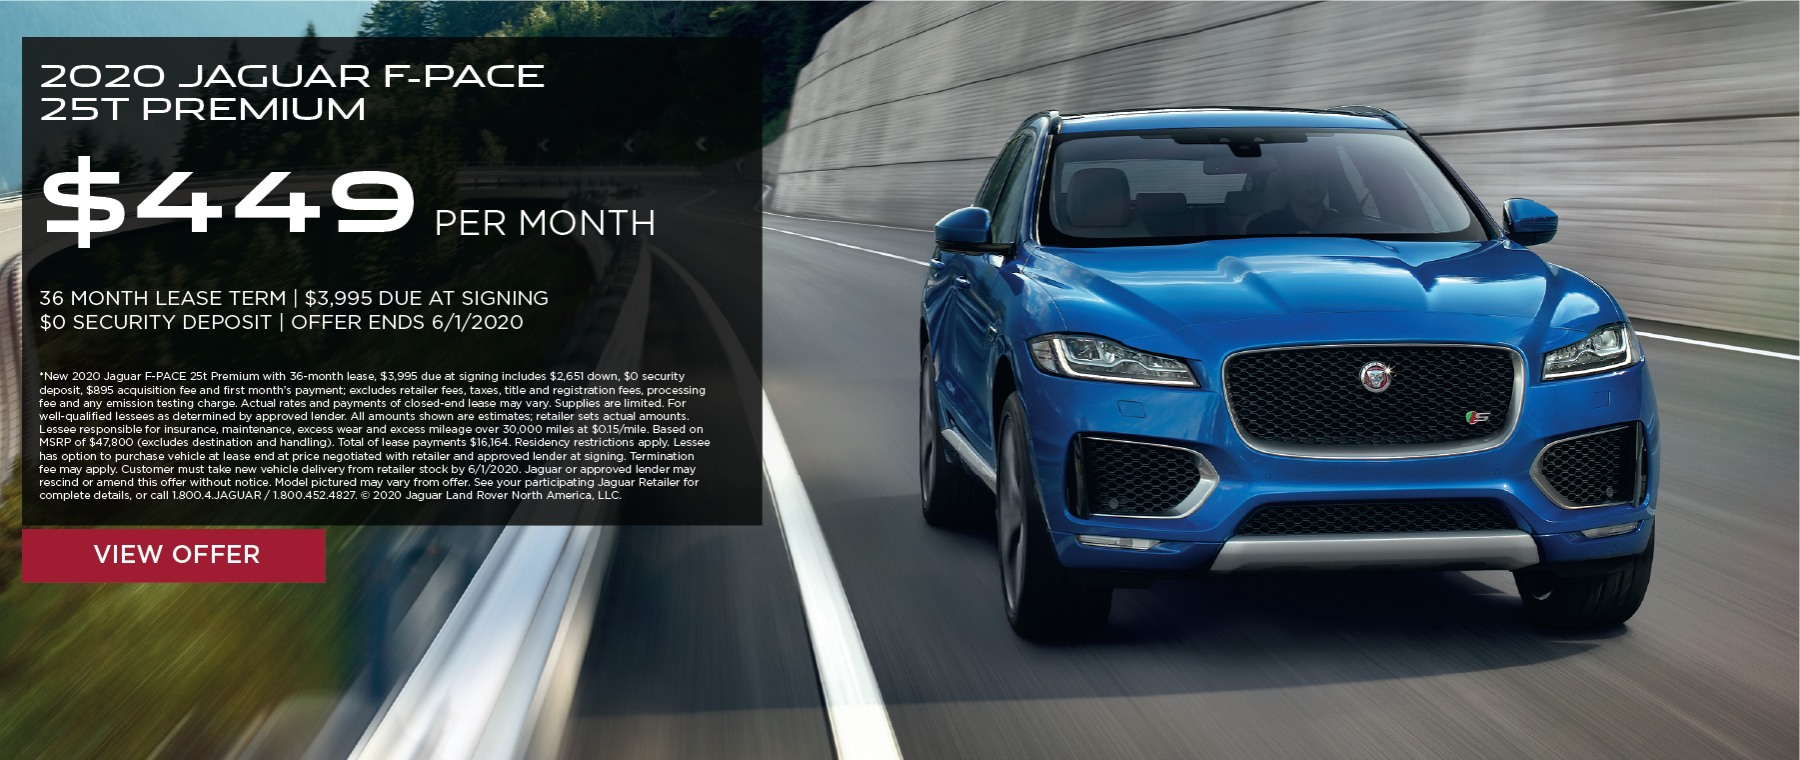 2020 JAGUAR F-PACE 25T PREMIUM. $449 PER MONTH. 36 MONTH LEASE TERM. $3,995 CASH DUE AT SIGNING. $0 SECURITY DEPOSIT. 10,000 MILES PER YEAR. EXCLUDES RETAILER FEES, TAXES, TITLE AND REGISTRATION FEES, PROCESSING FEE AND ANY EMISSION TESTING CHARGE. OFFER ENDS 6/1/2020.